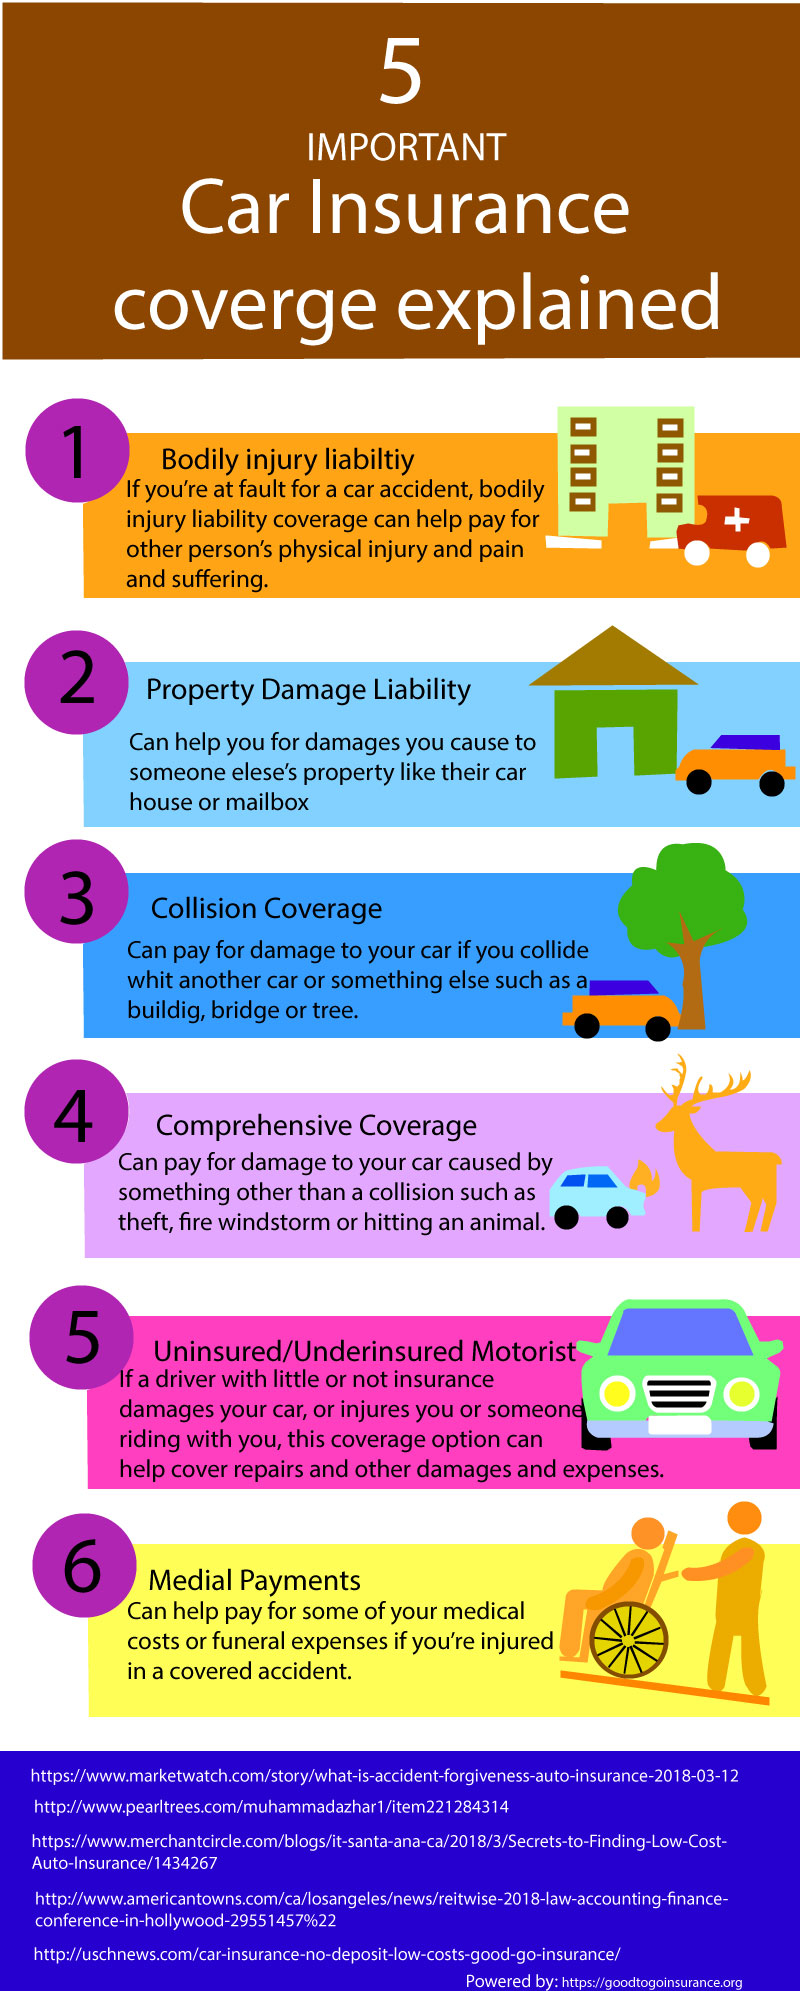 How To Get Car Insurance Before You Buy a Car